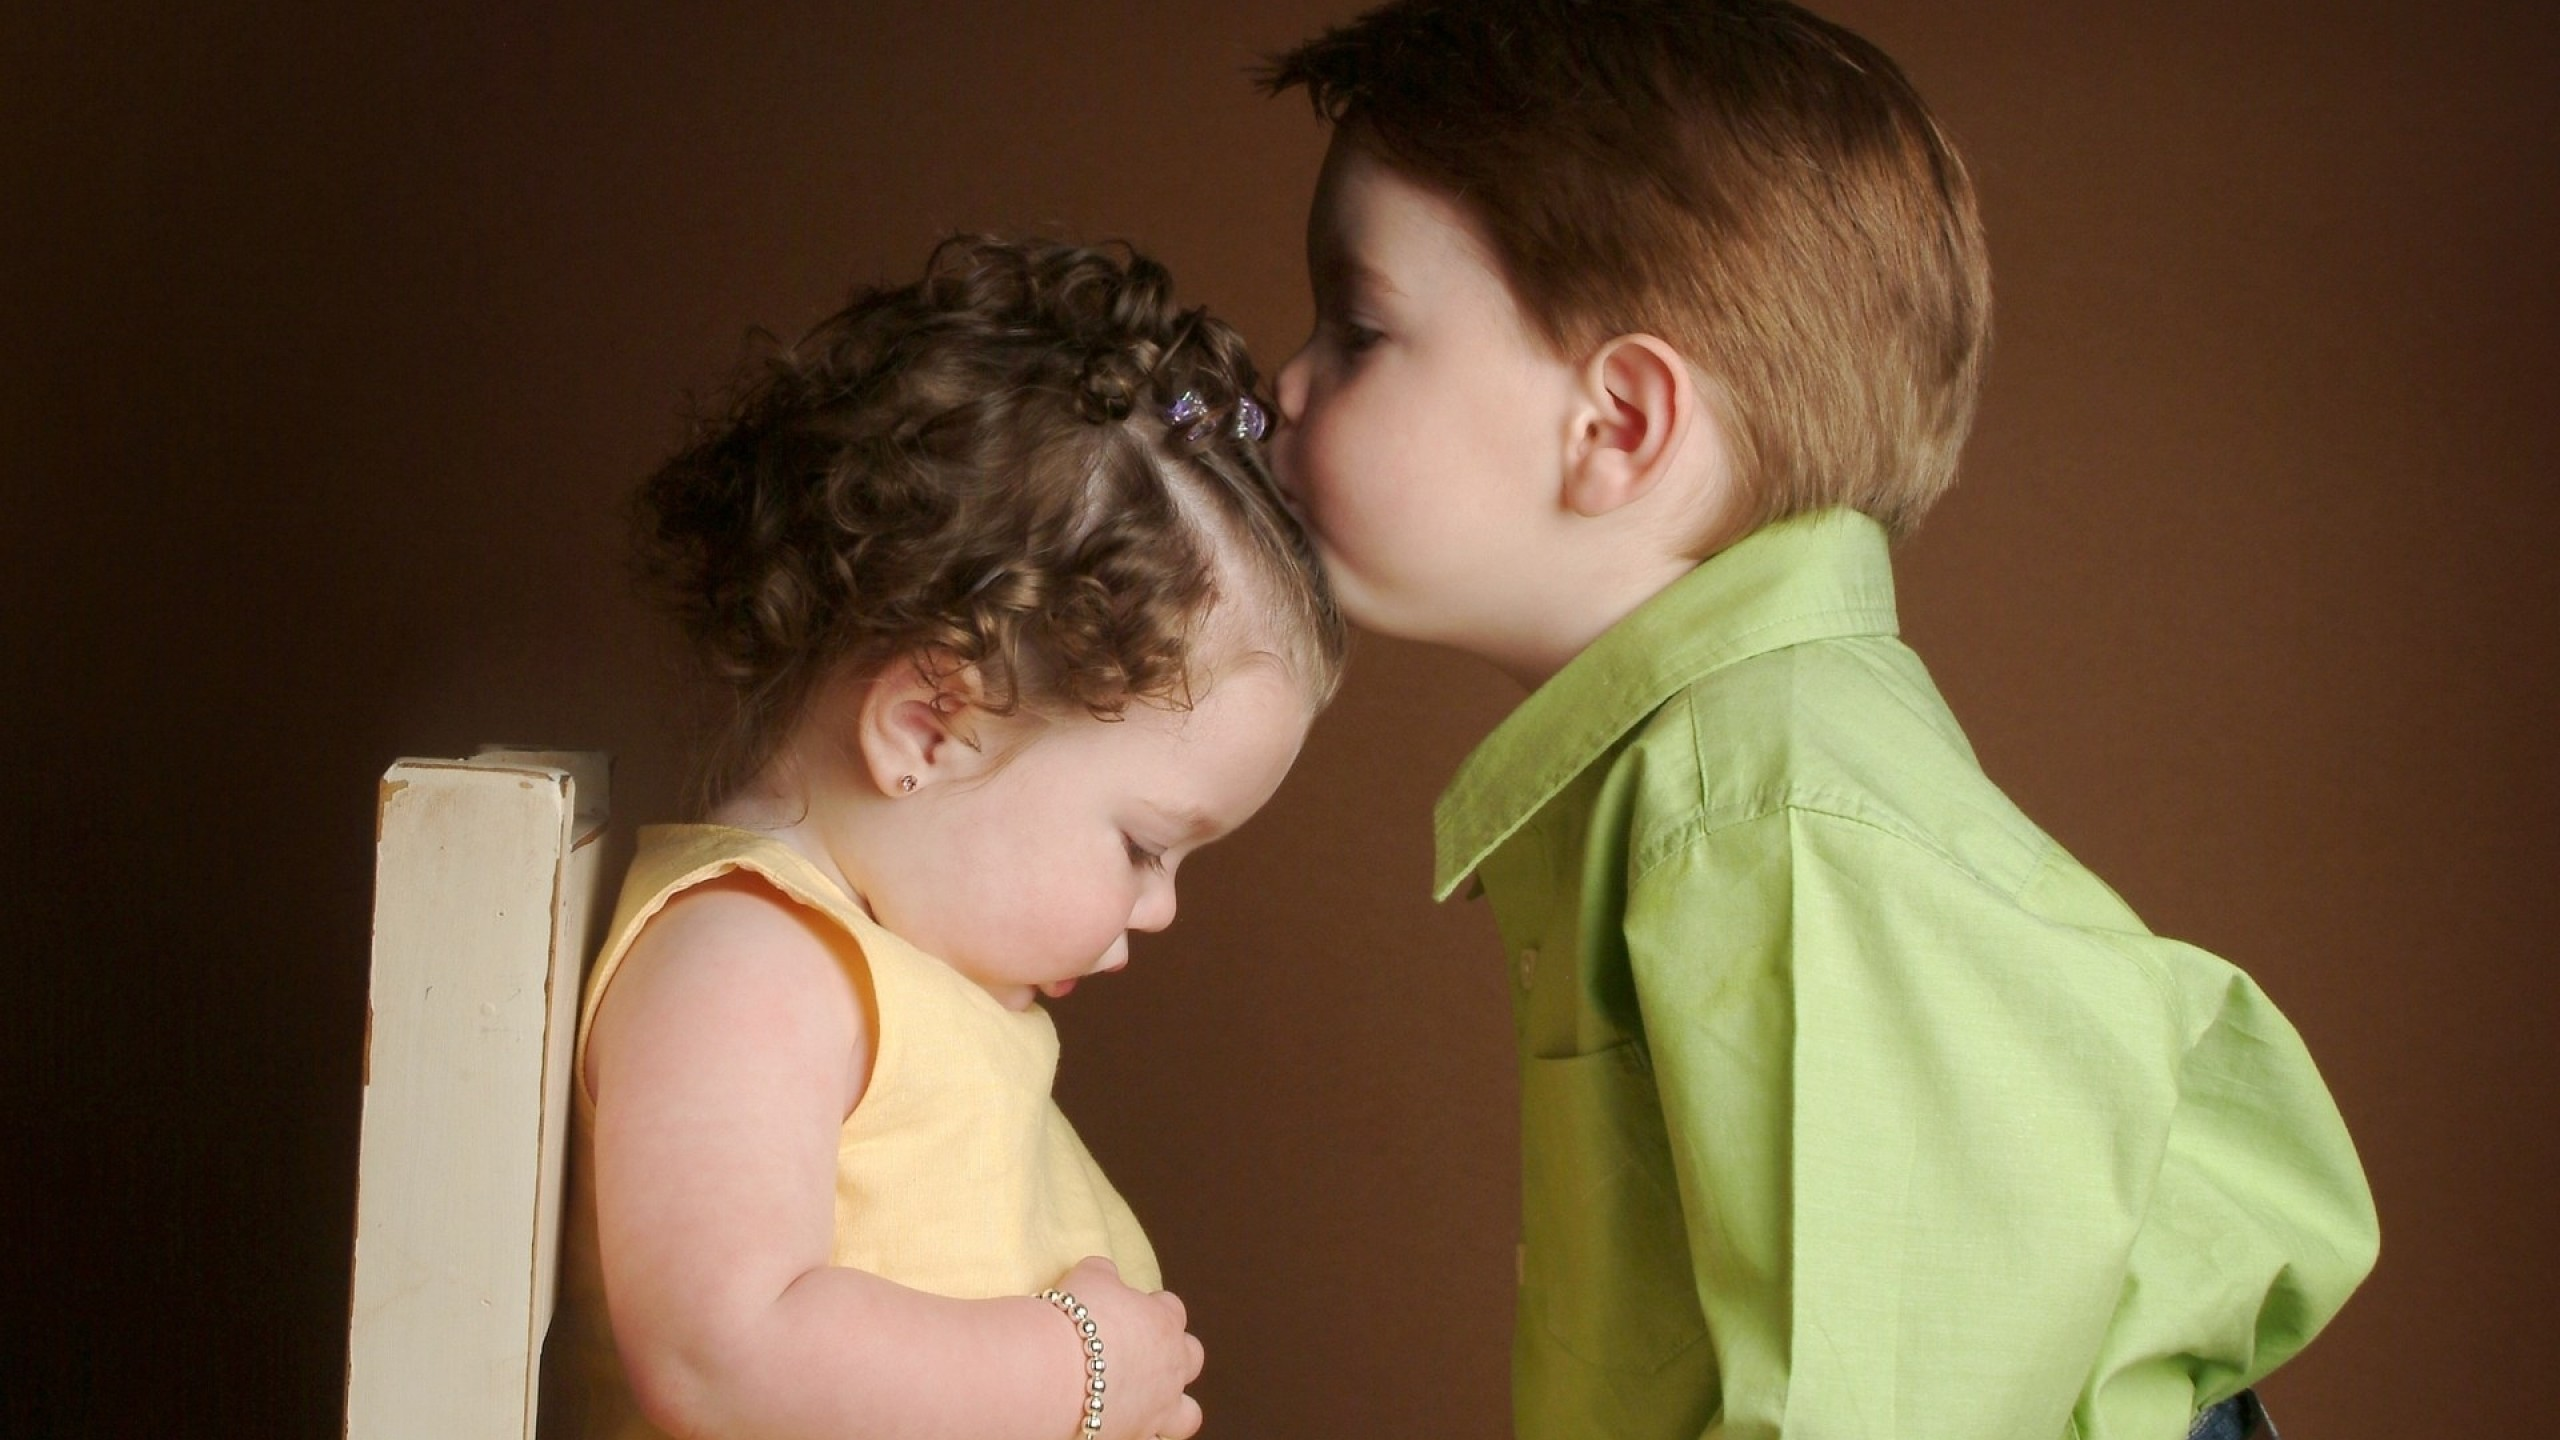 http://uupload.ir/files/117x_sweet-baby-kissing-hd-wallpapers.jpg